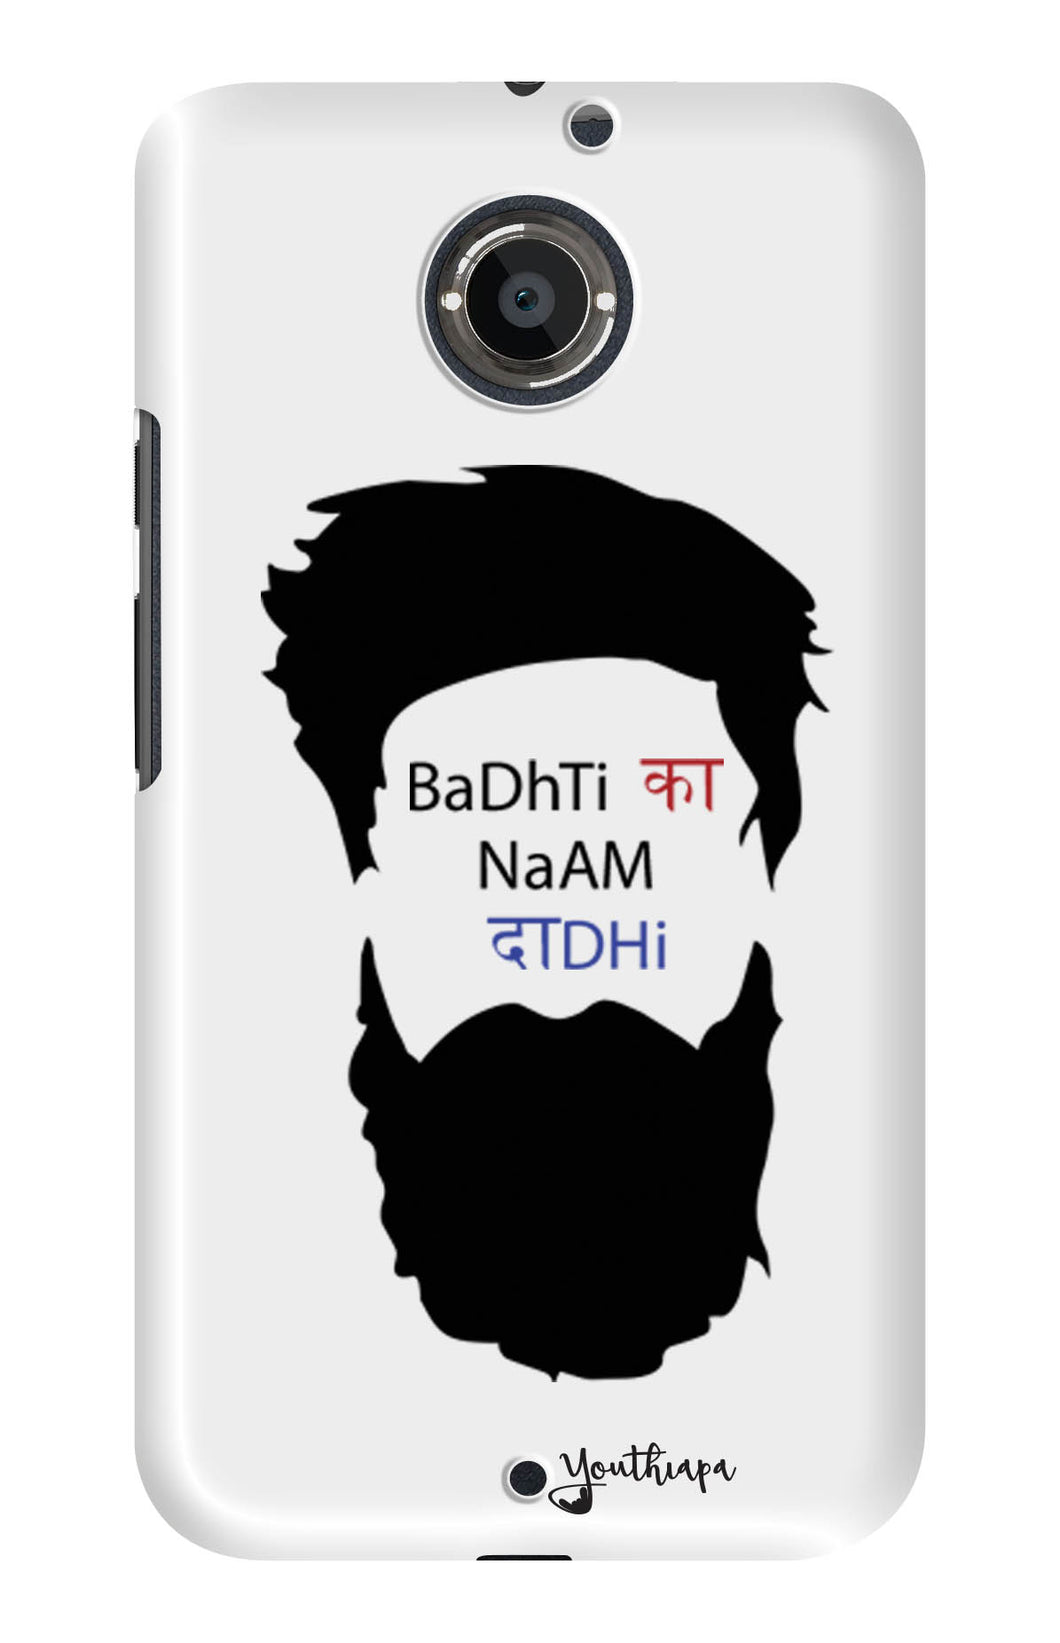 The Beard Edition WHITE for MOTO X 2